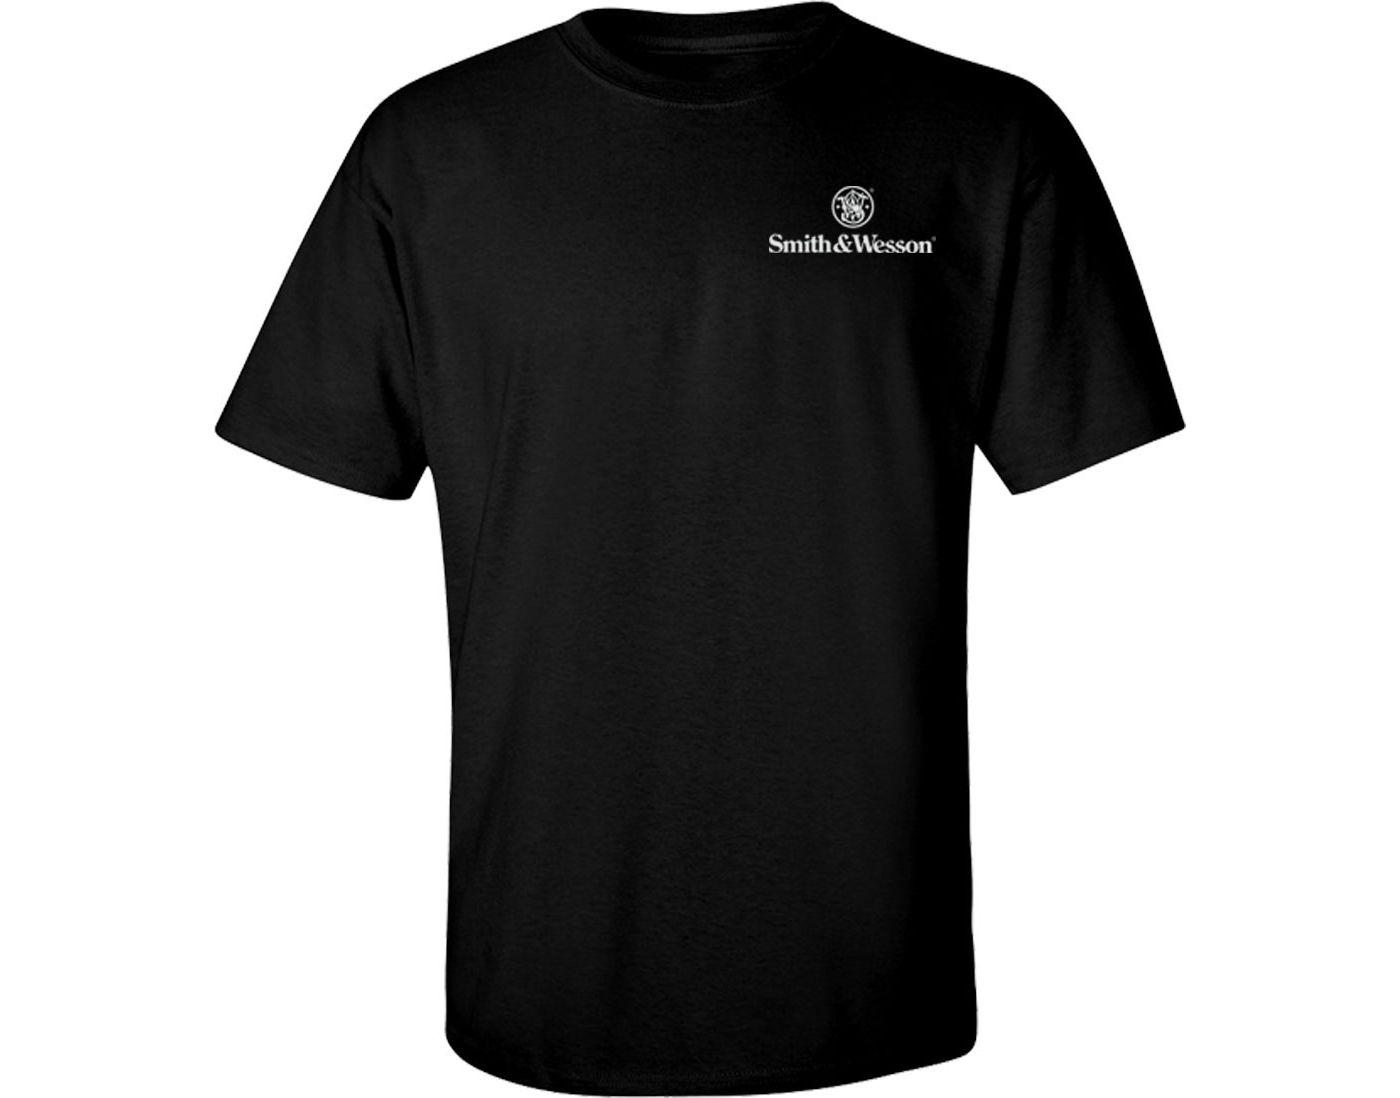 Smith & Wesson Men's Distressed T-Shirt